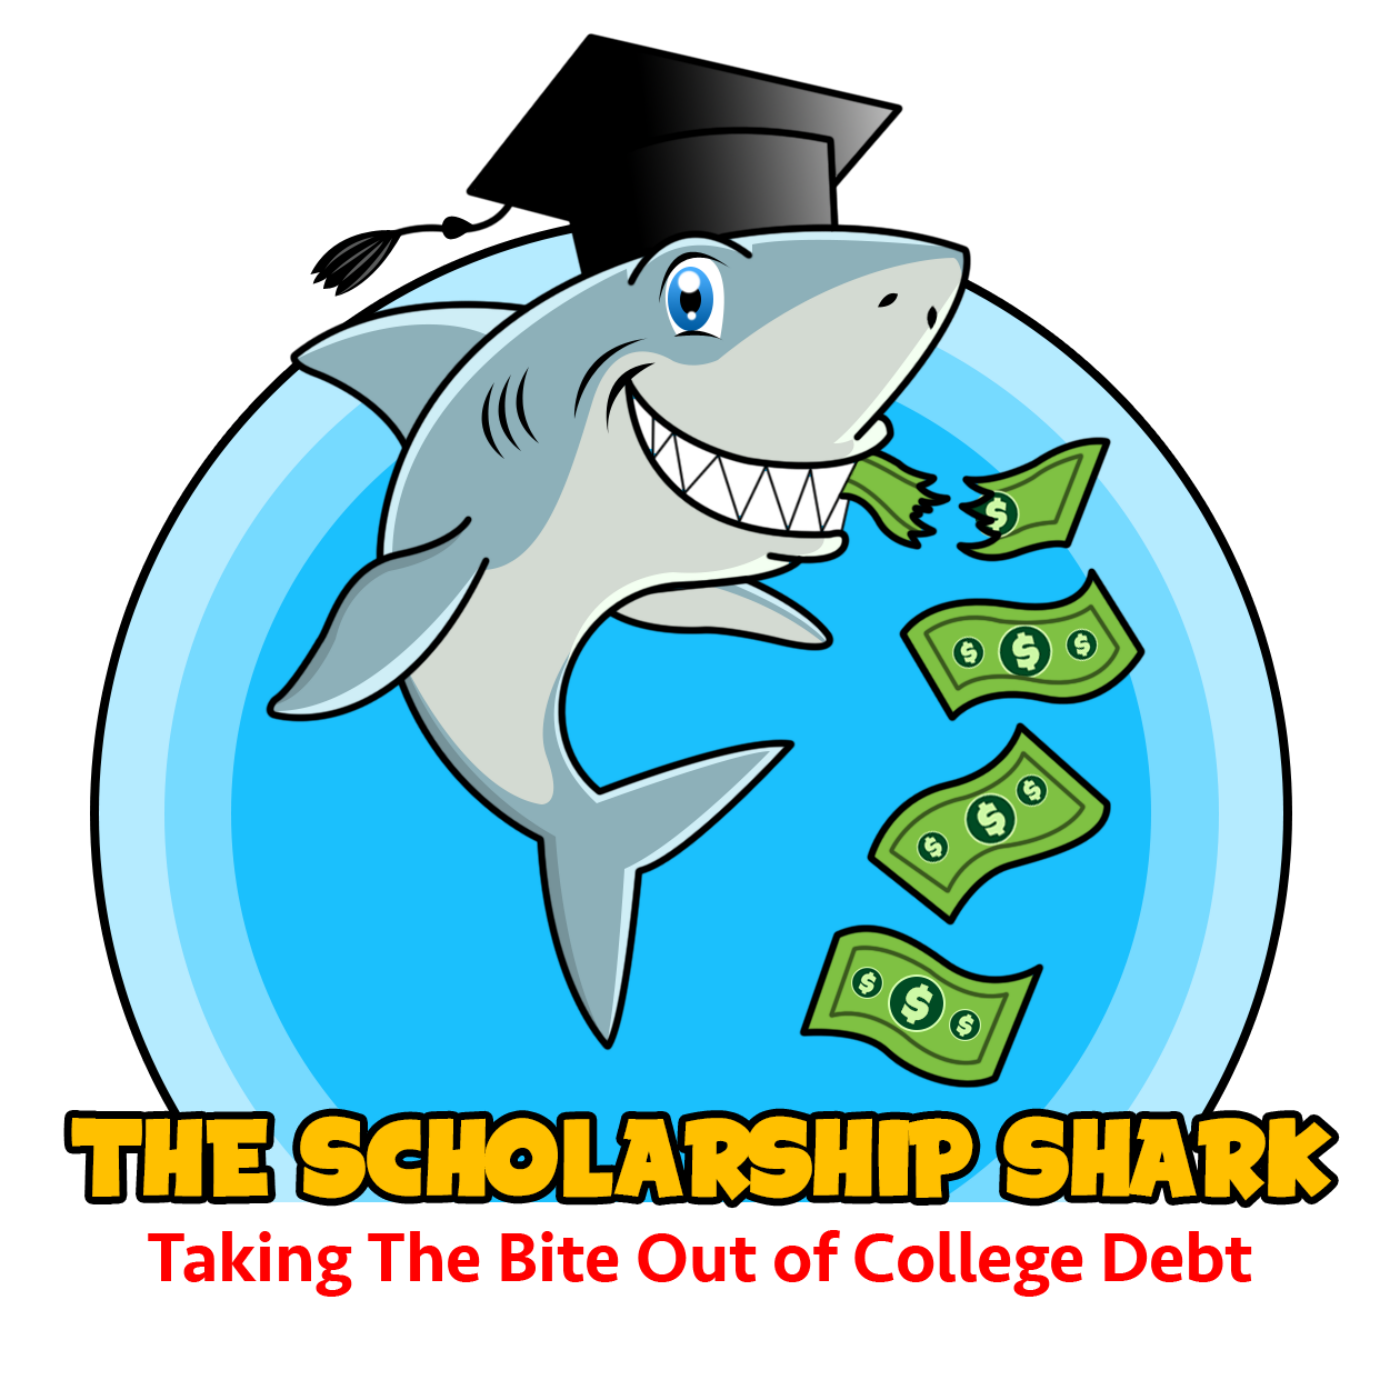 Fish in distress clipart banner free stock 044: Coping Strategies for Anxiety in Teens - The Scholarship Shark banner free stock